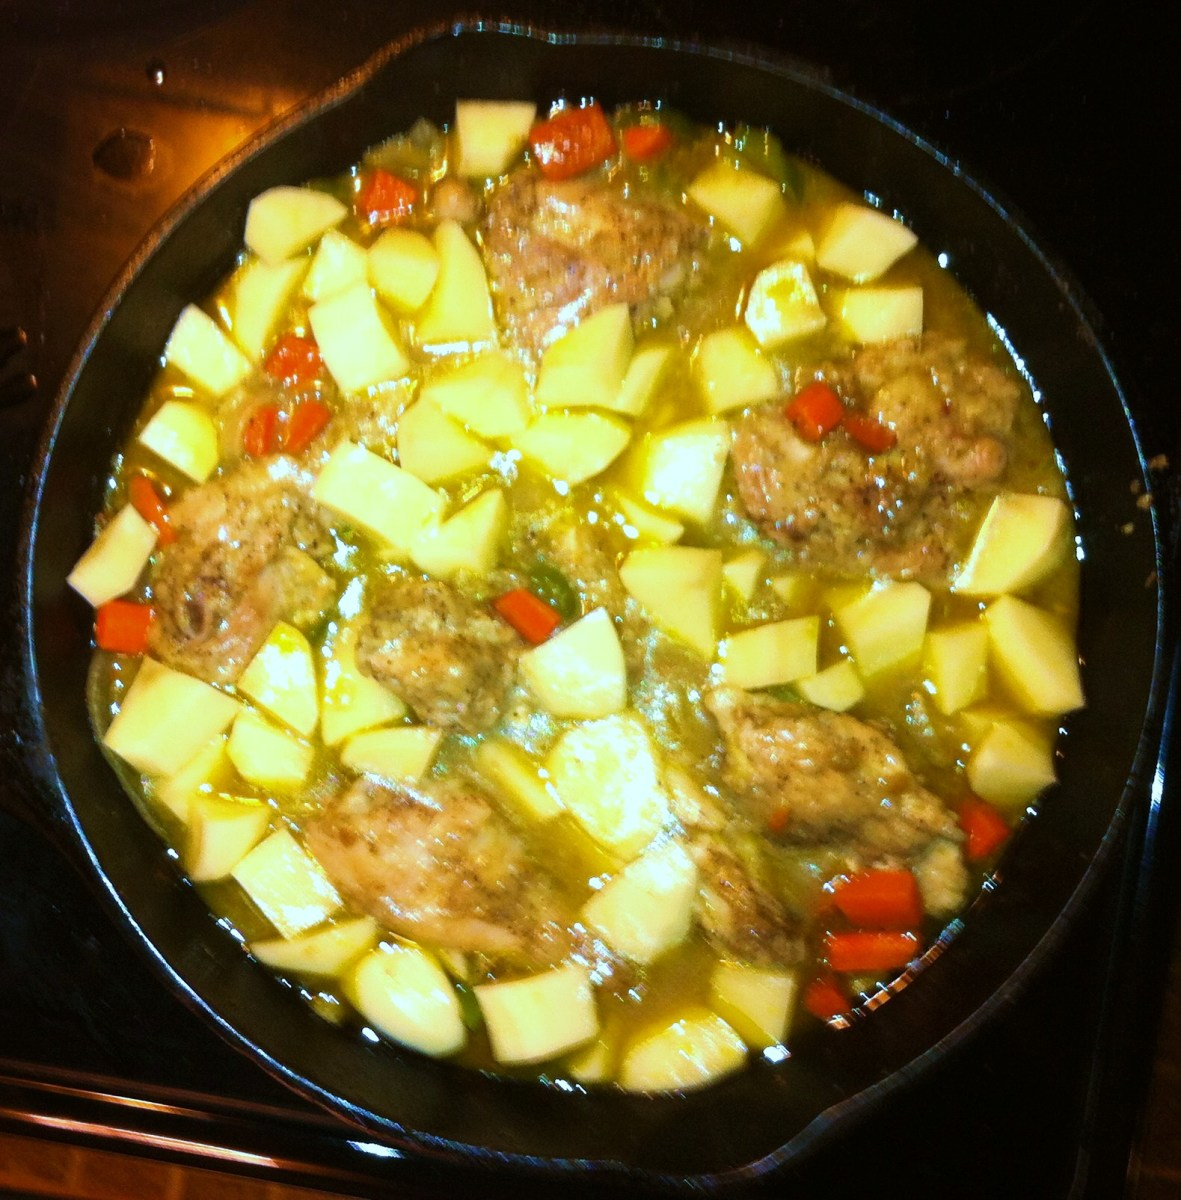 Add Potatoes, Cover & Cook for an Additional 20 minutes, Stir Occasionally.